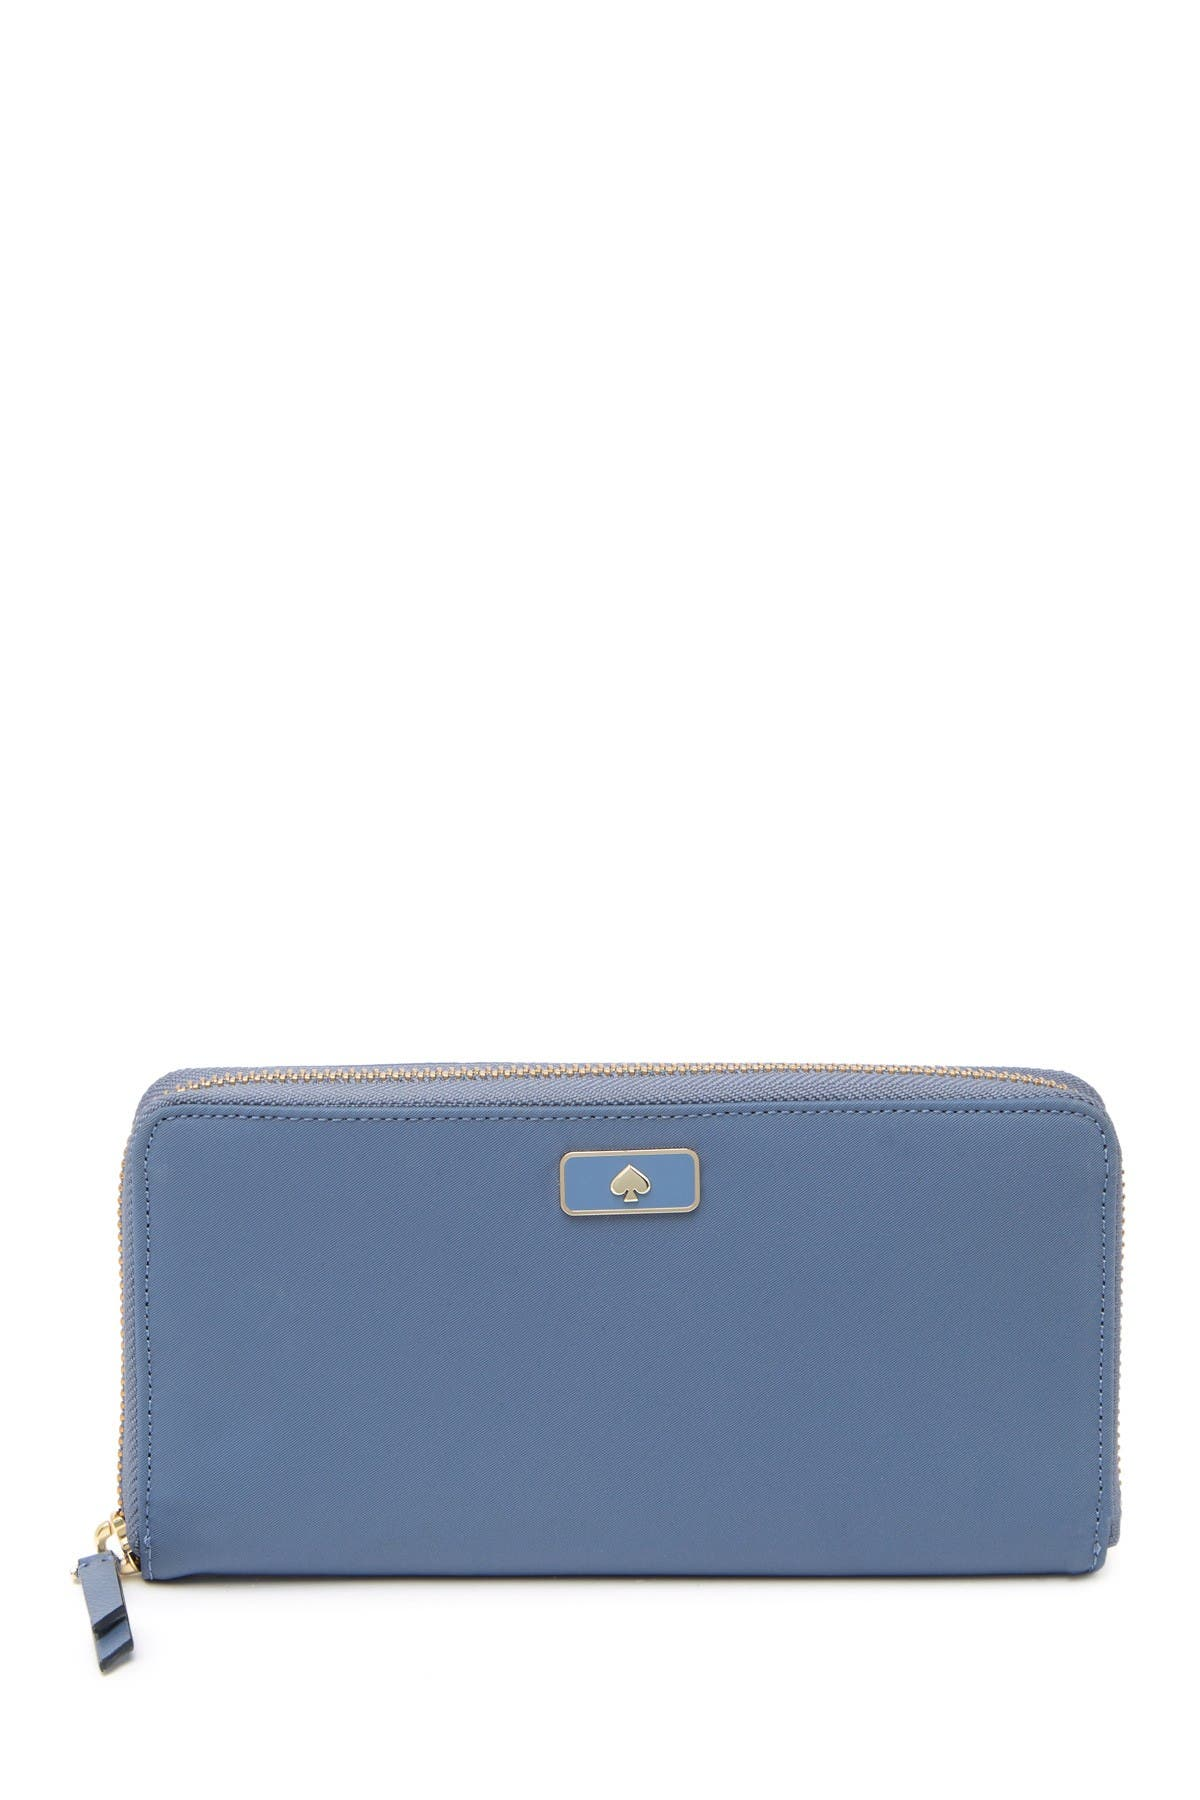 Image of kate spade new york dawn large continental wallet